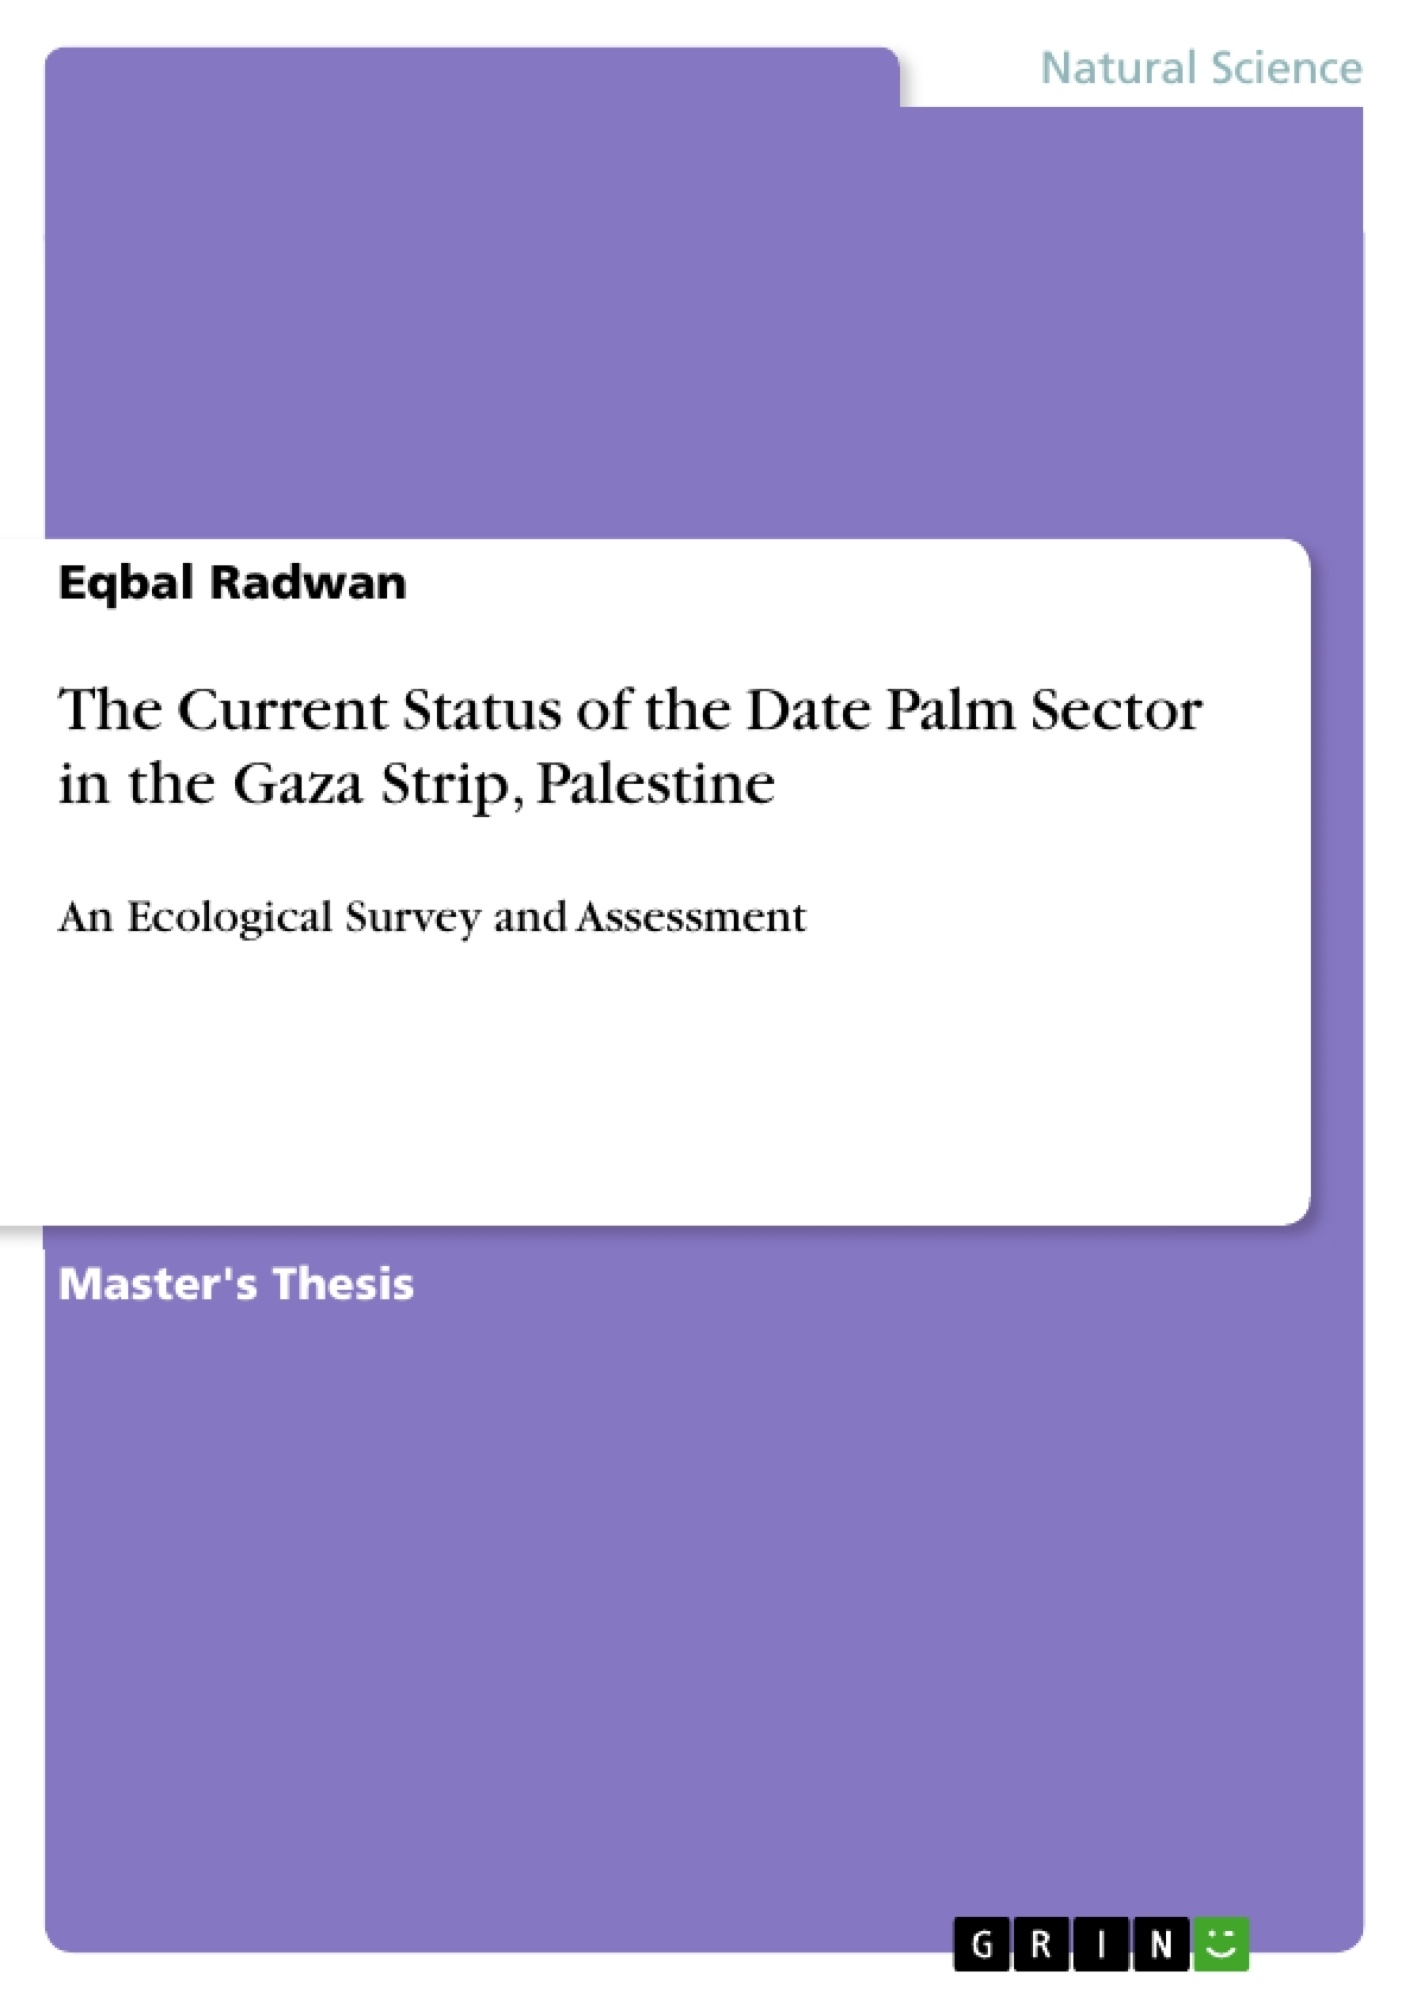 Title: The Current Status of the Date Palm Sector in the Gaza Strip, Palestine